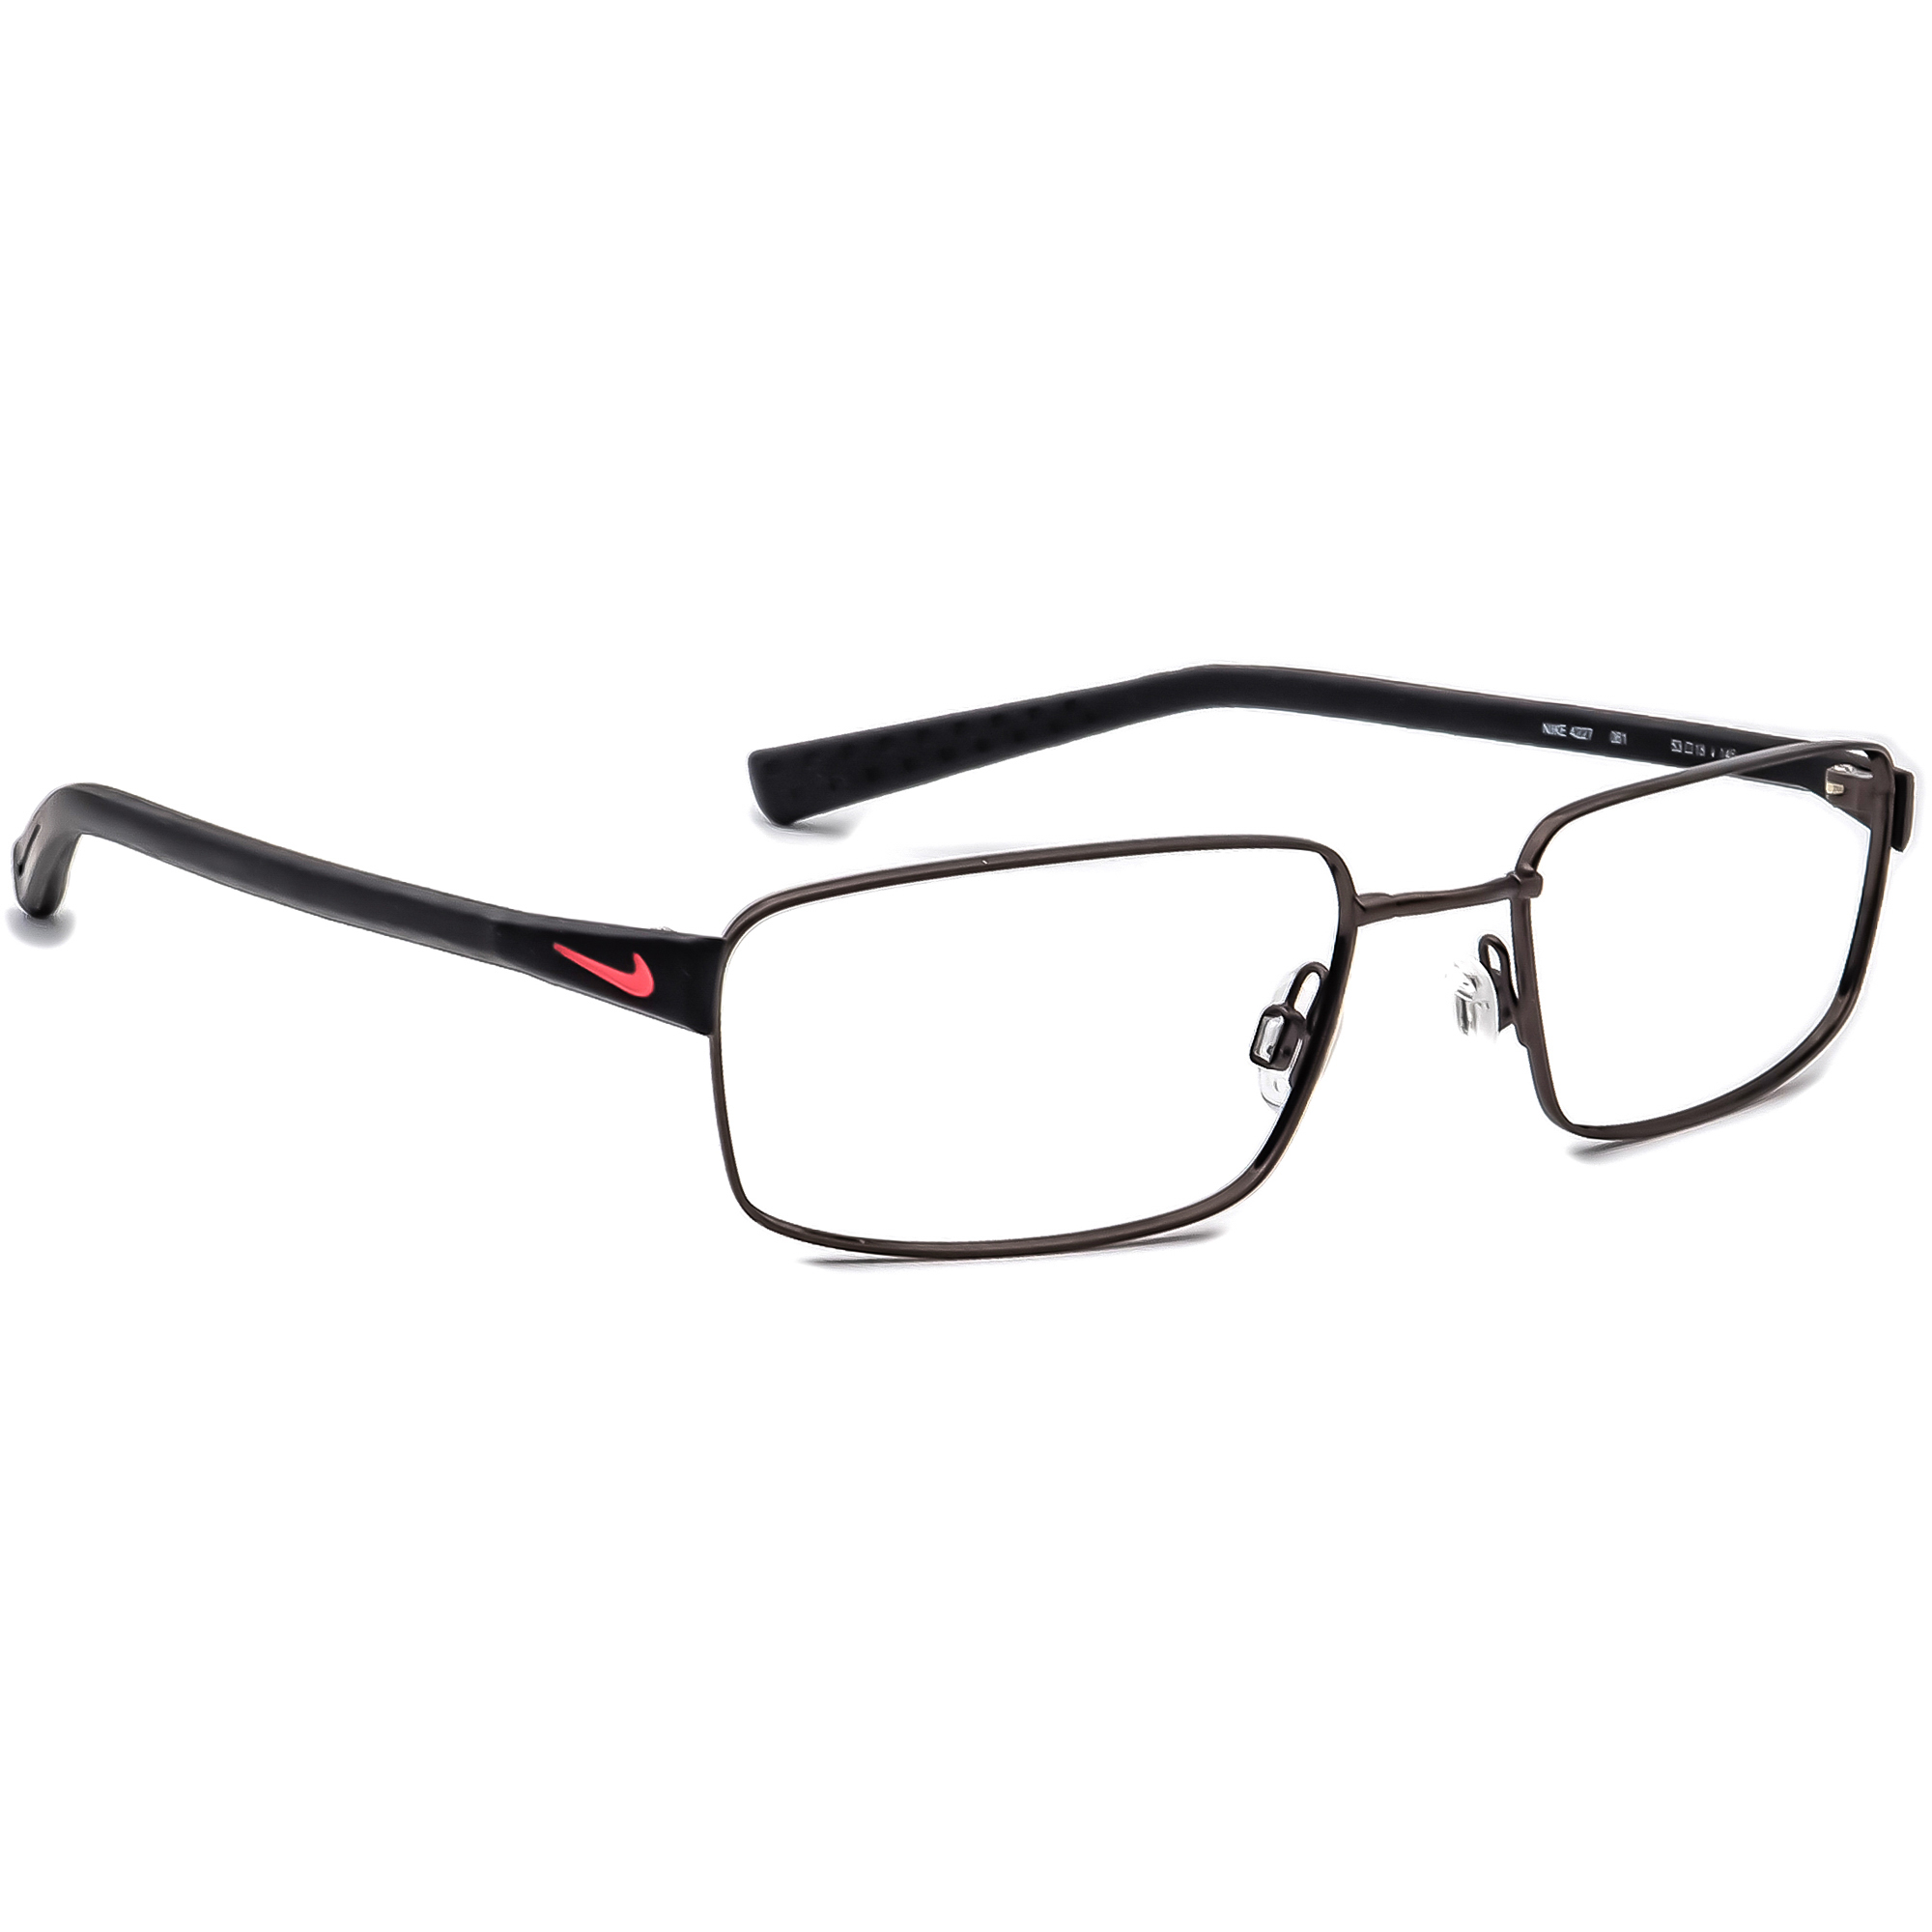 Nike 4227 061 Flexon Bridge Eyeglasses